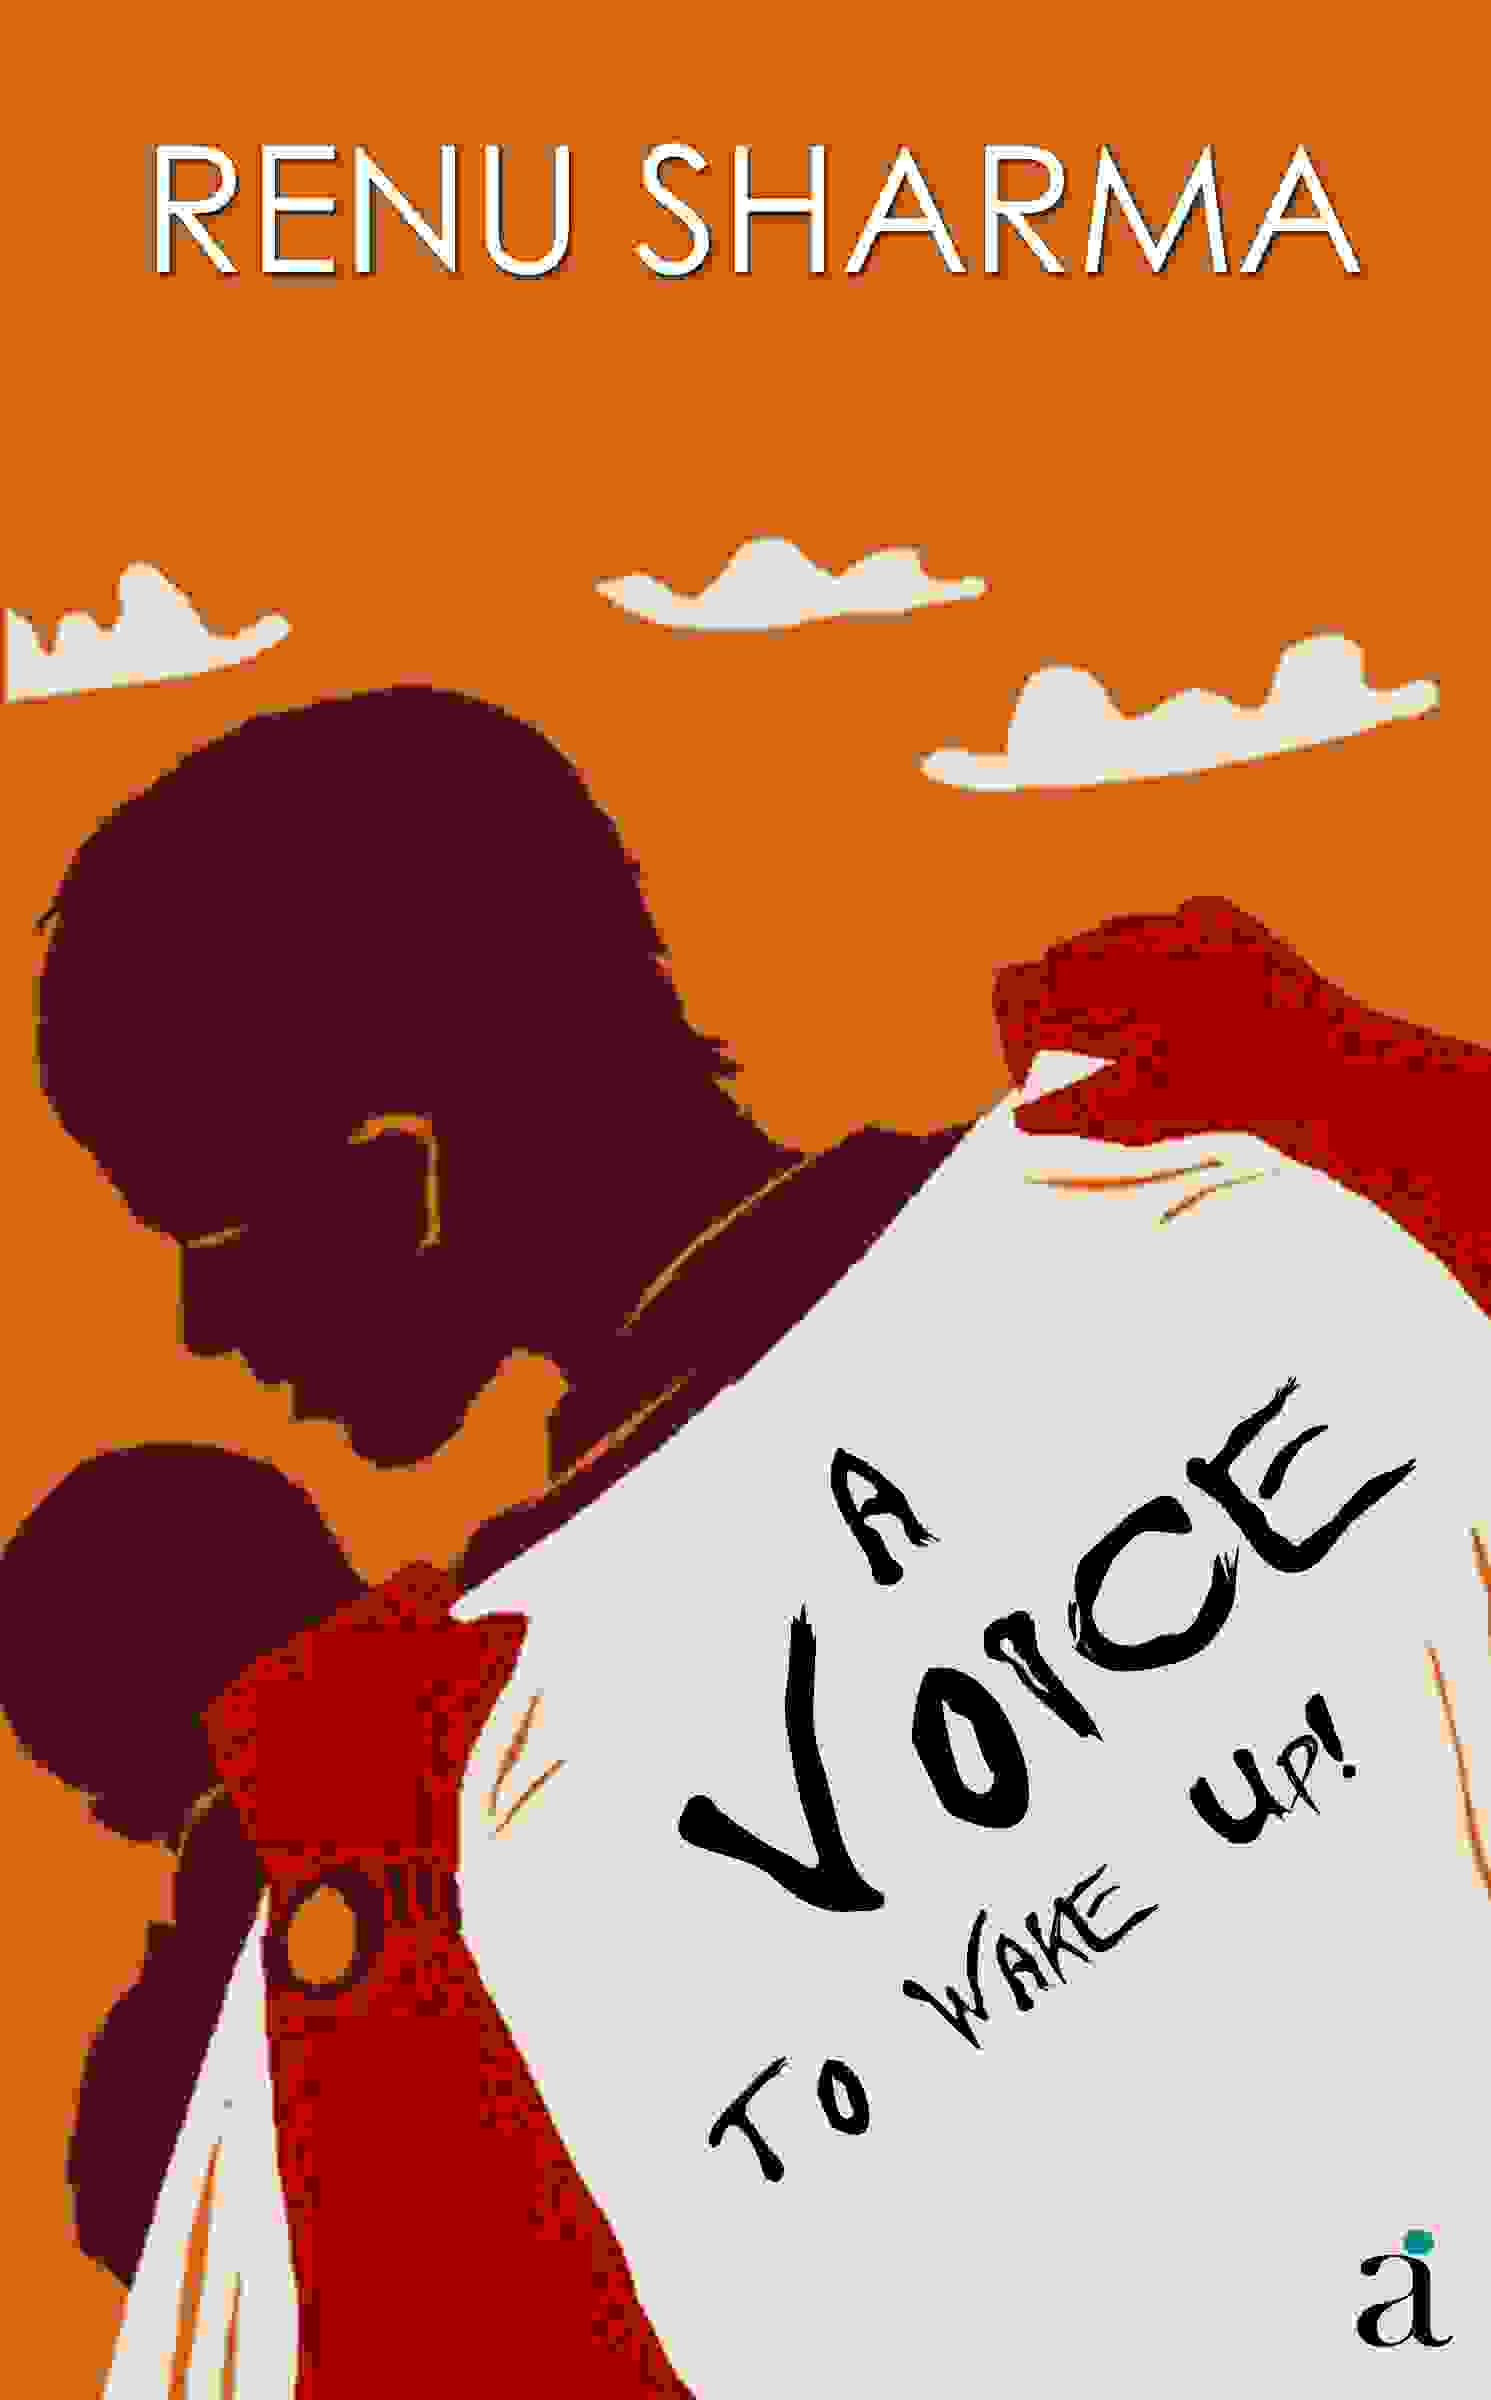 A Voice to Wake up!